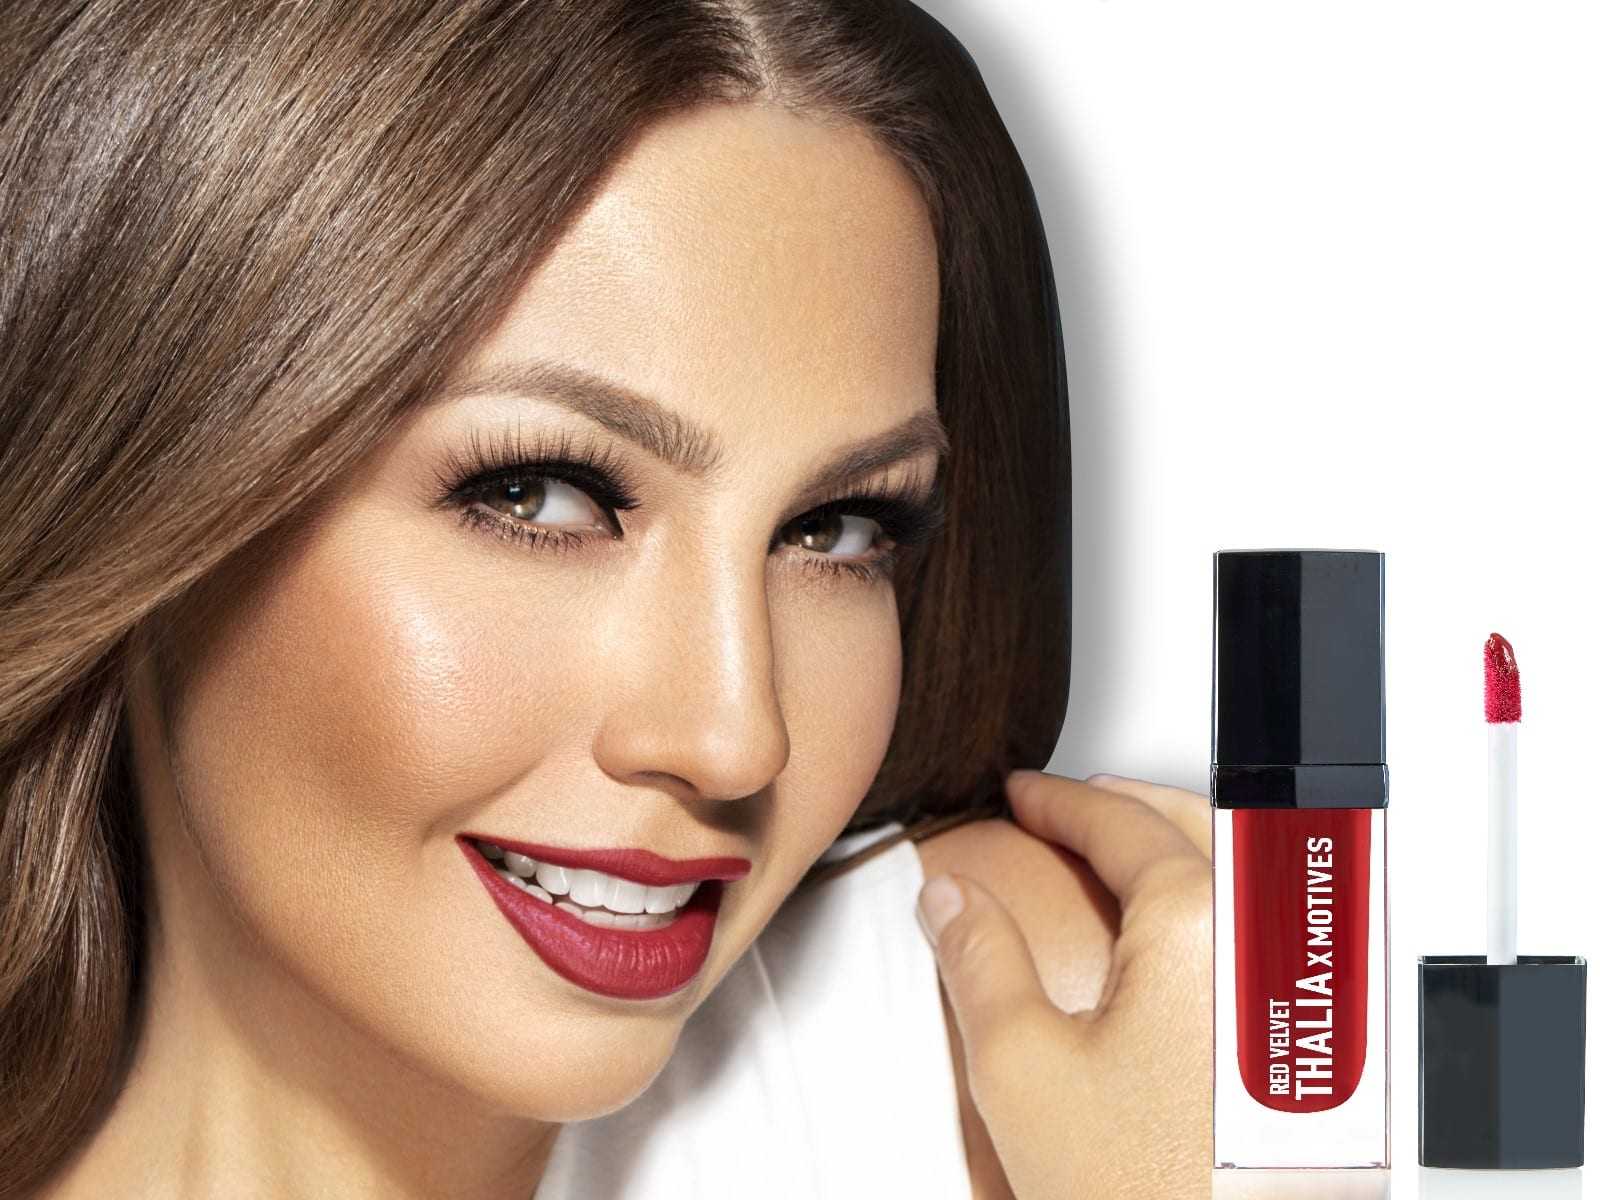 Where to buy Motives Cosmetics Near Me - Thalia Lipstick